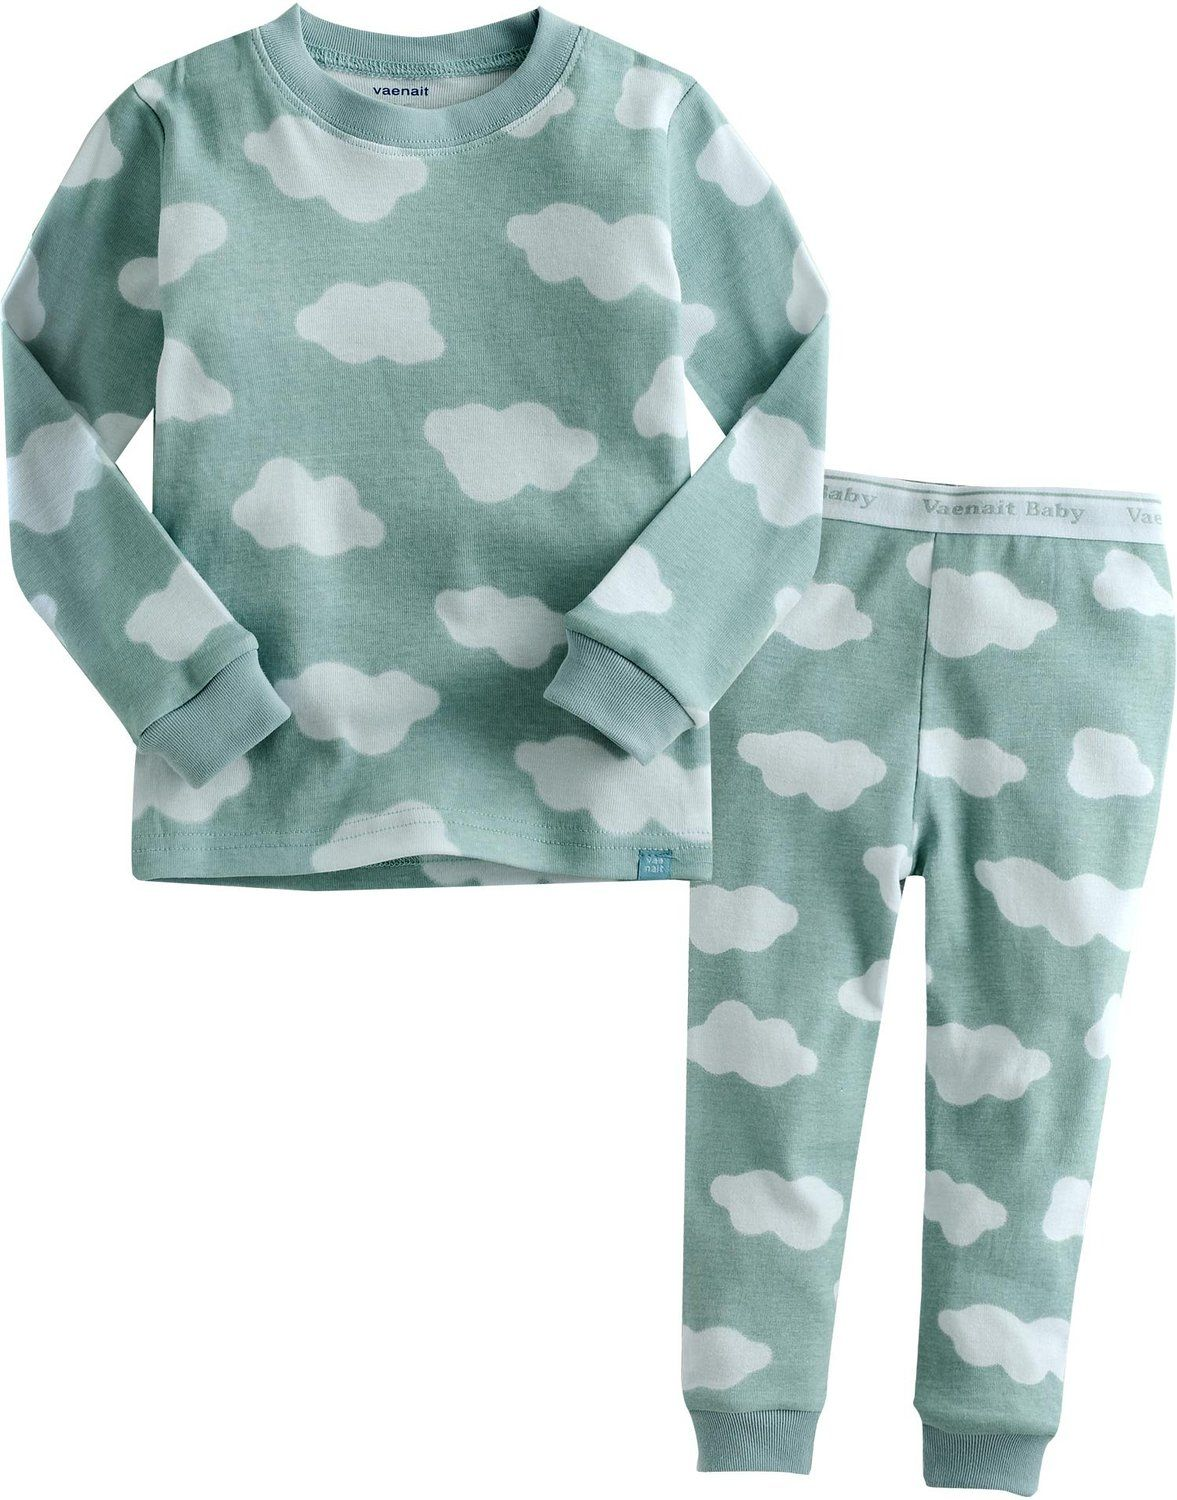 1243cce7565b Amazon.com  Vaenait Baby 12M-7T Kids Boys Sleepwear Pajama Top ...